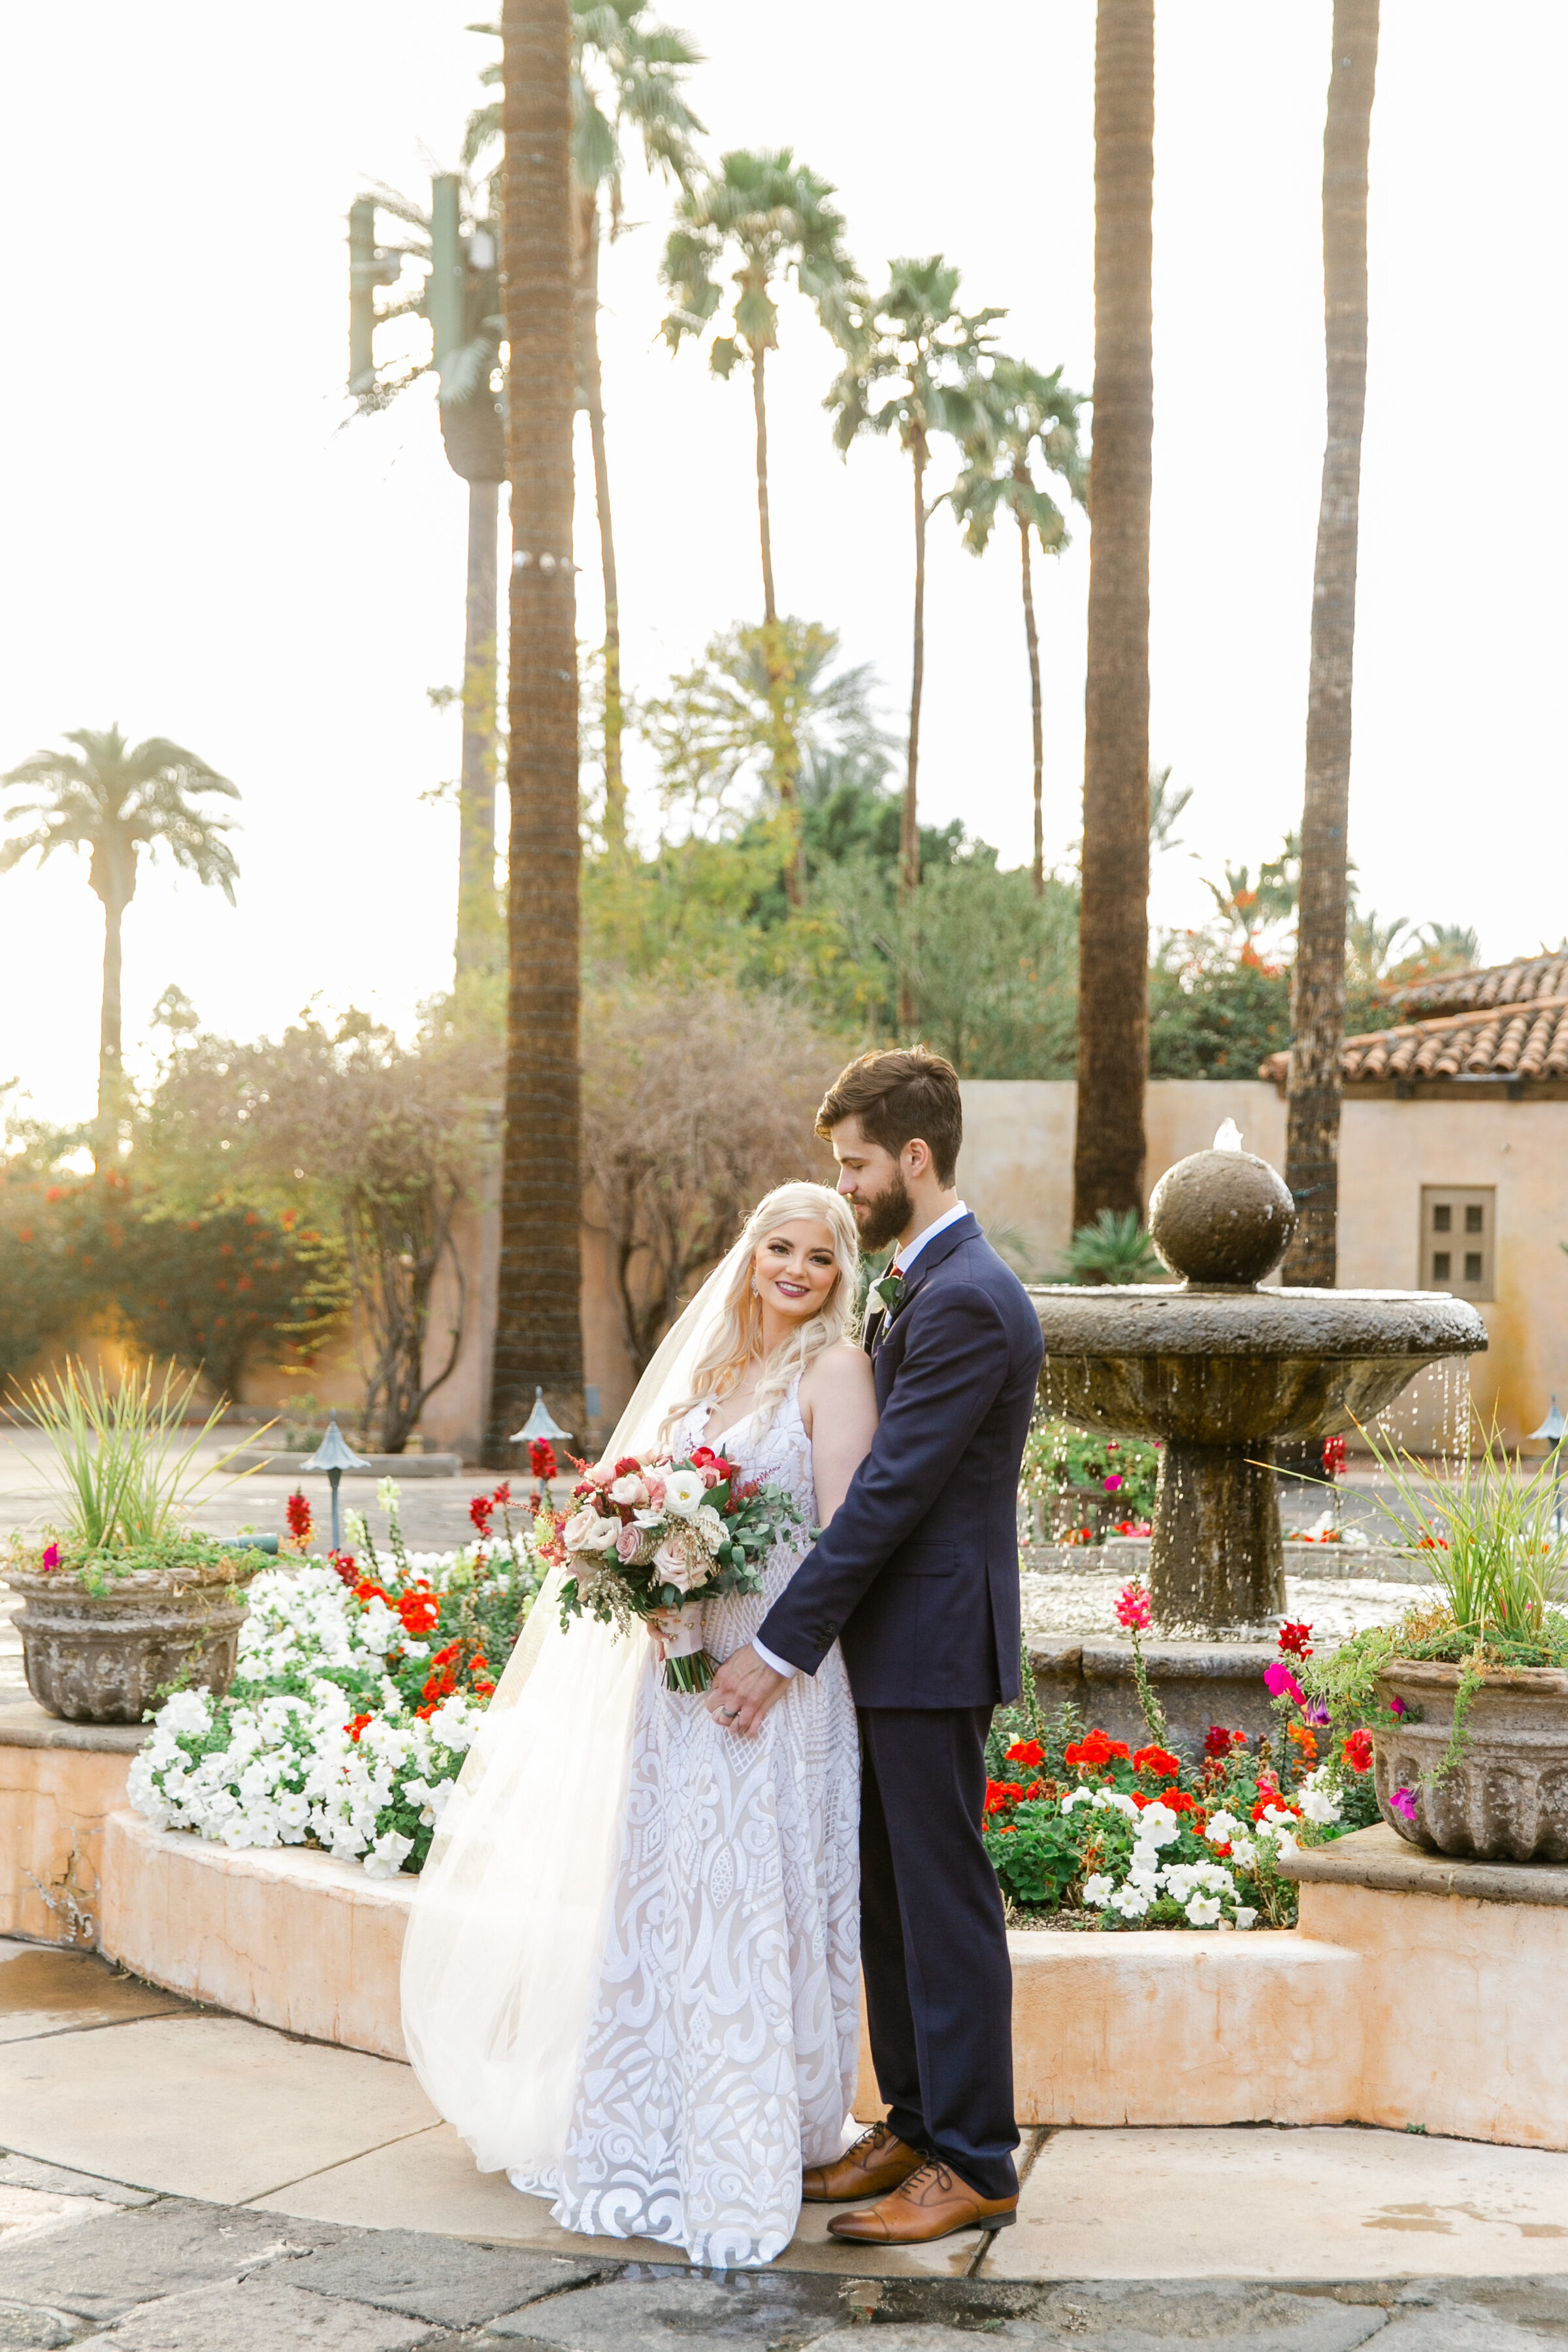 Karlie Colleen Photography - The Royal Palms Wedding - Some Like It Classic - Alex & Sam-537